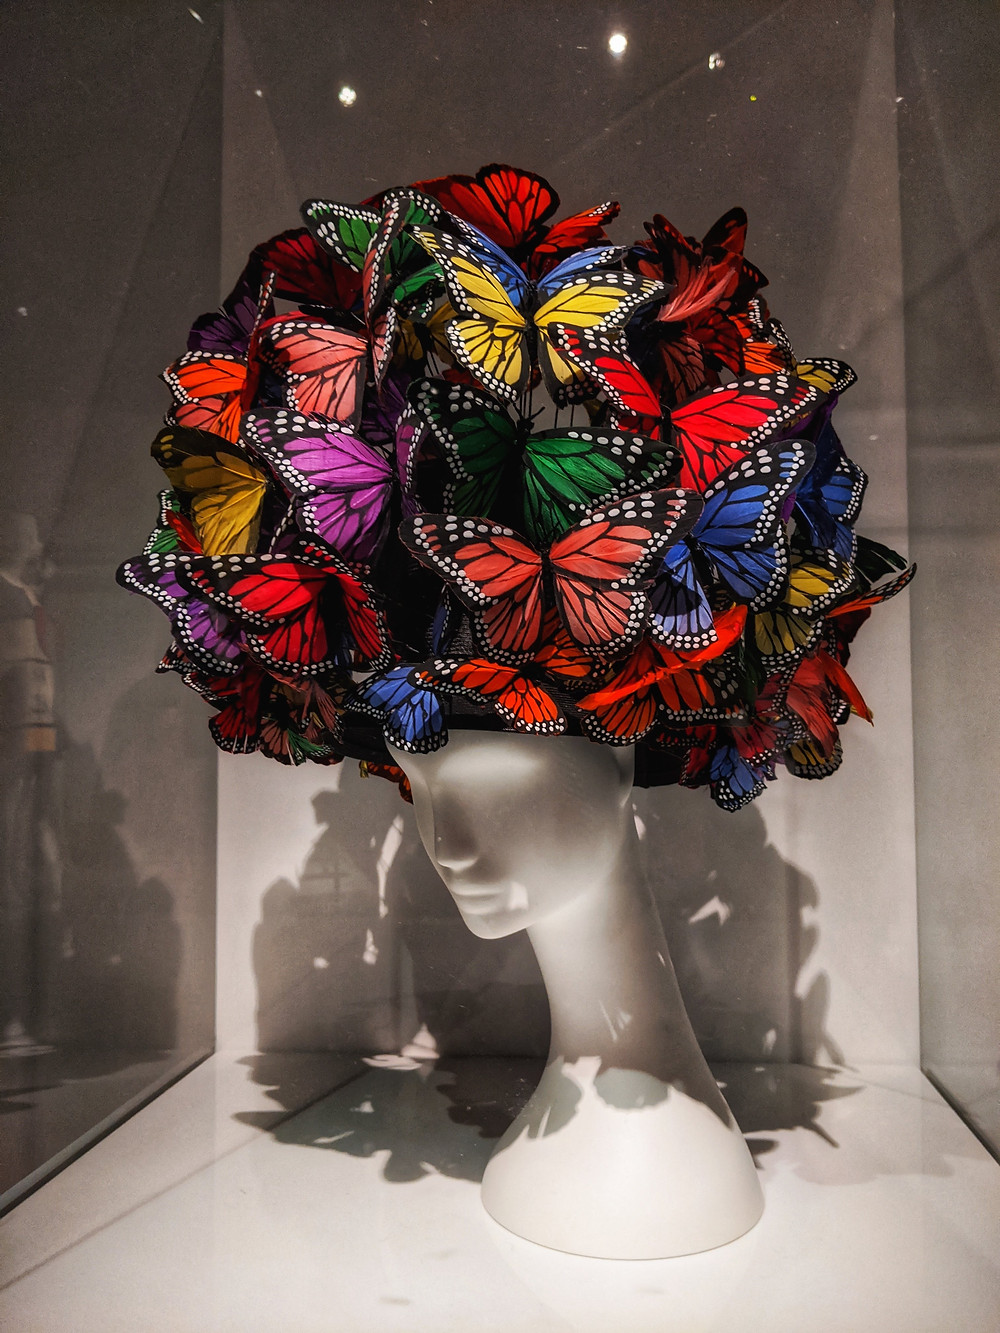 hat-from-museum-exhibit-with-butterflies-all-over-it